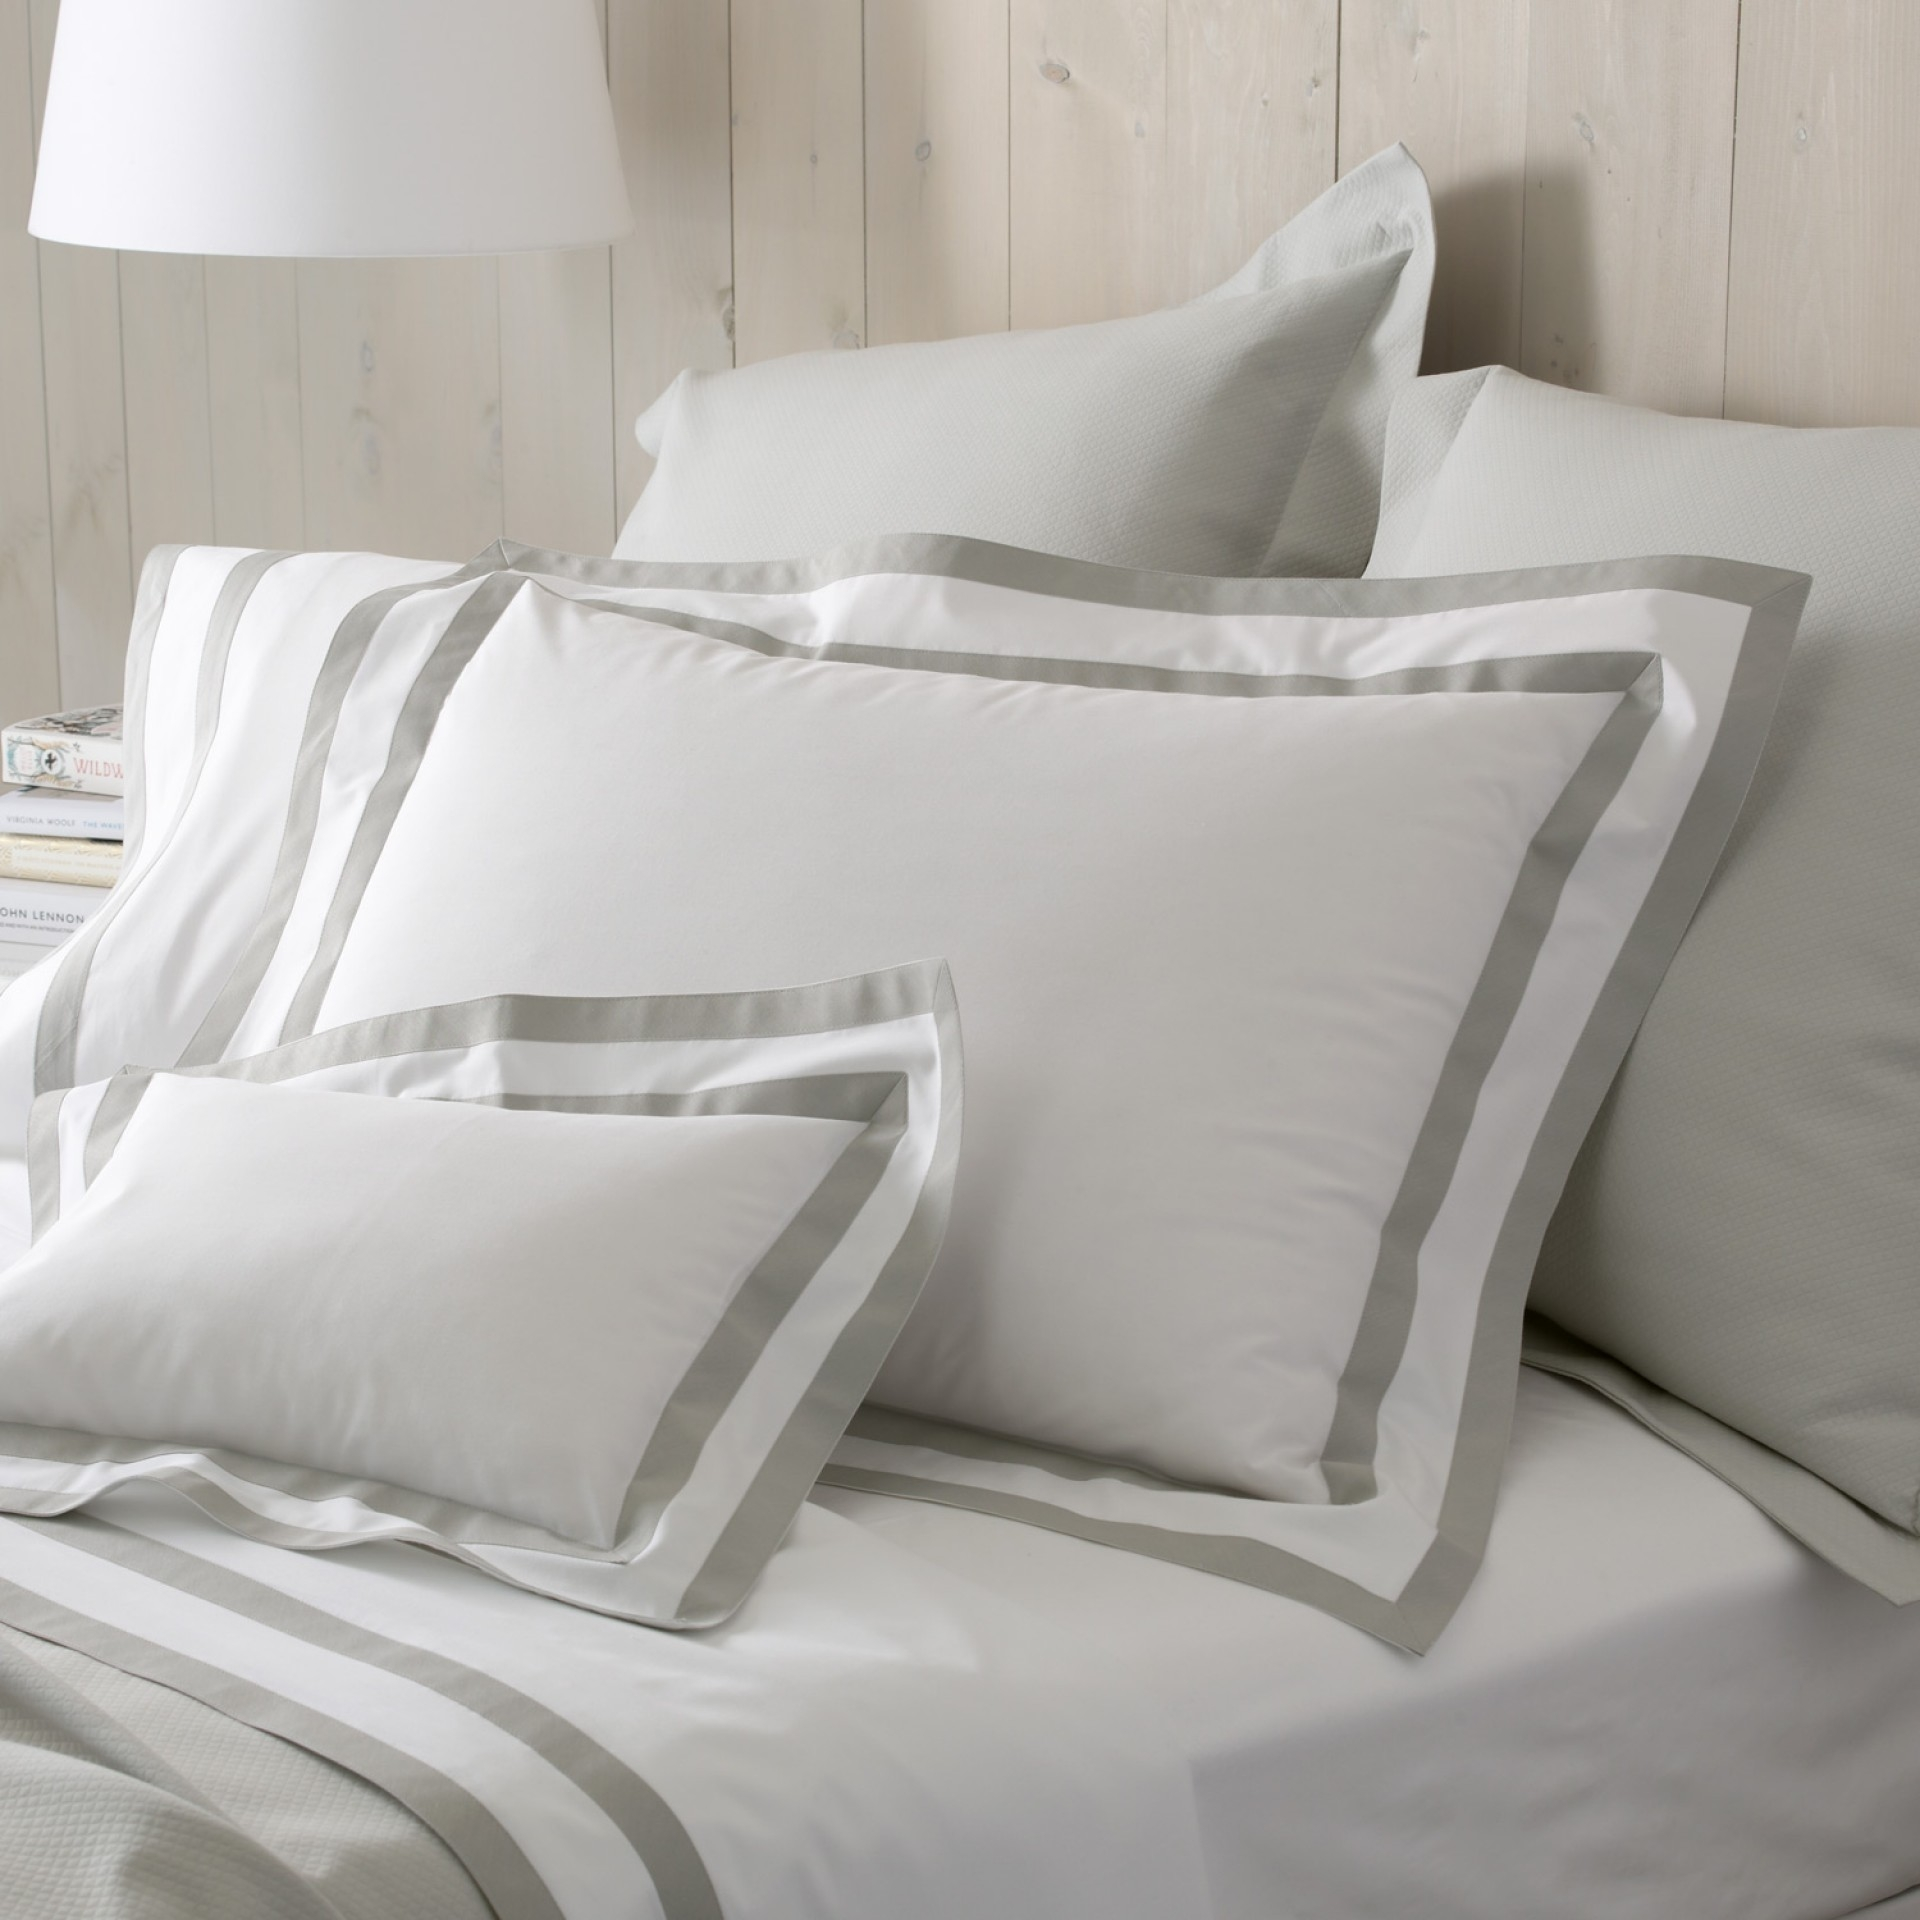 Marvelous Luxurious Bed Linens Part - 9: Marlowe Luxury Bed Linens ...